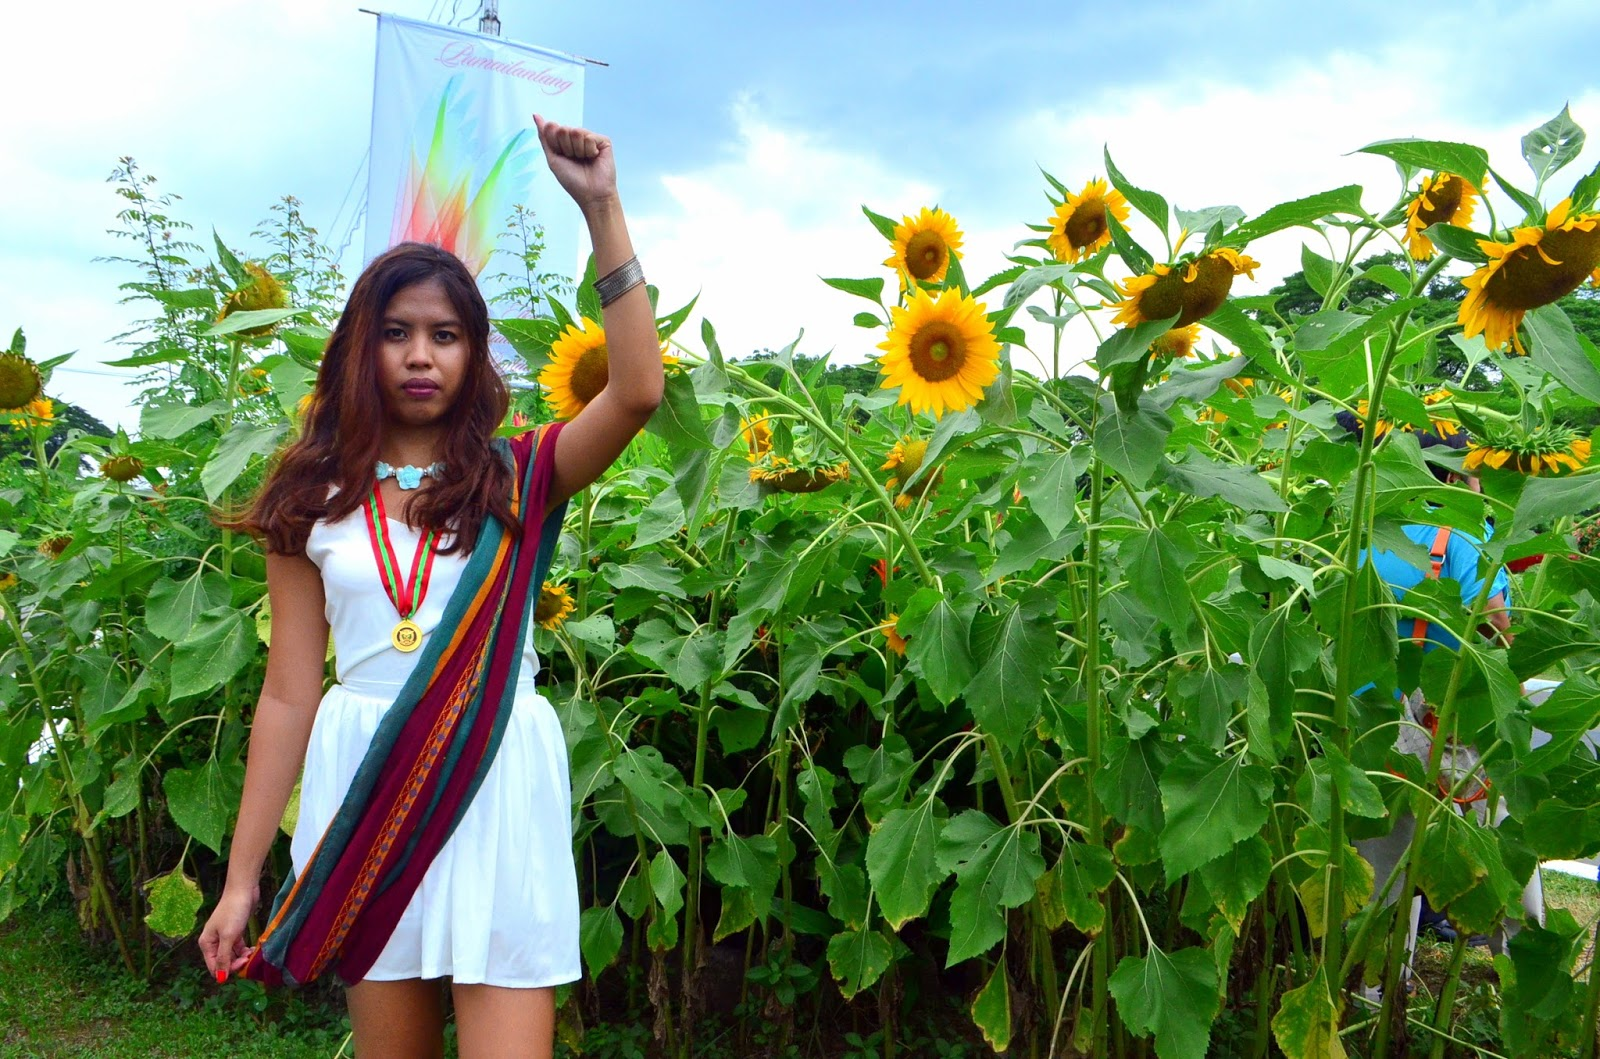 UP Diliman graduation 2016 sunflowers